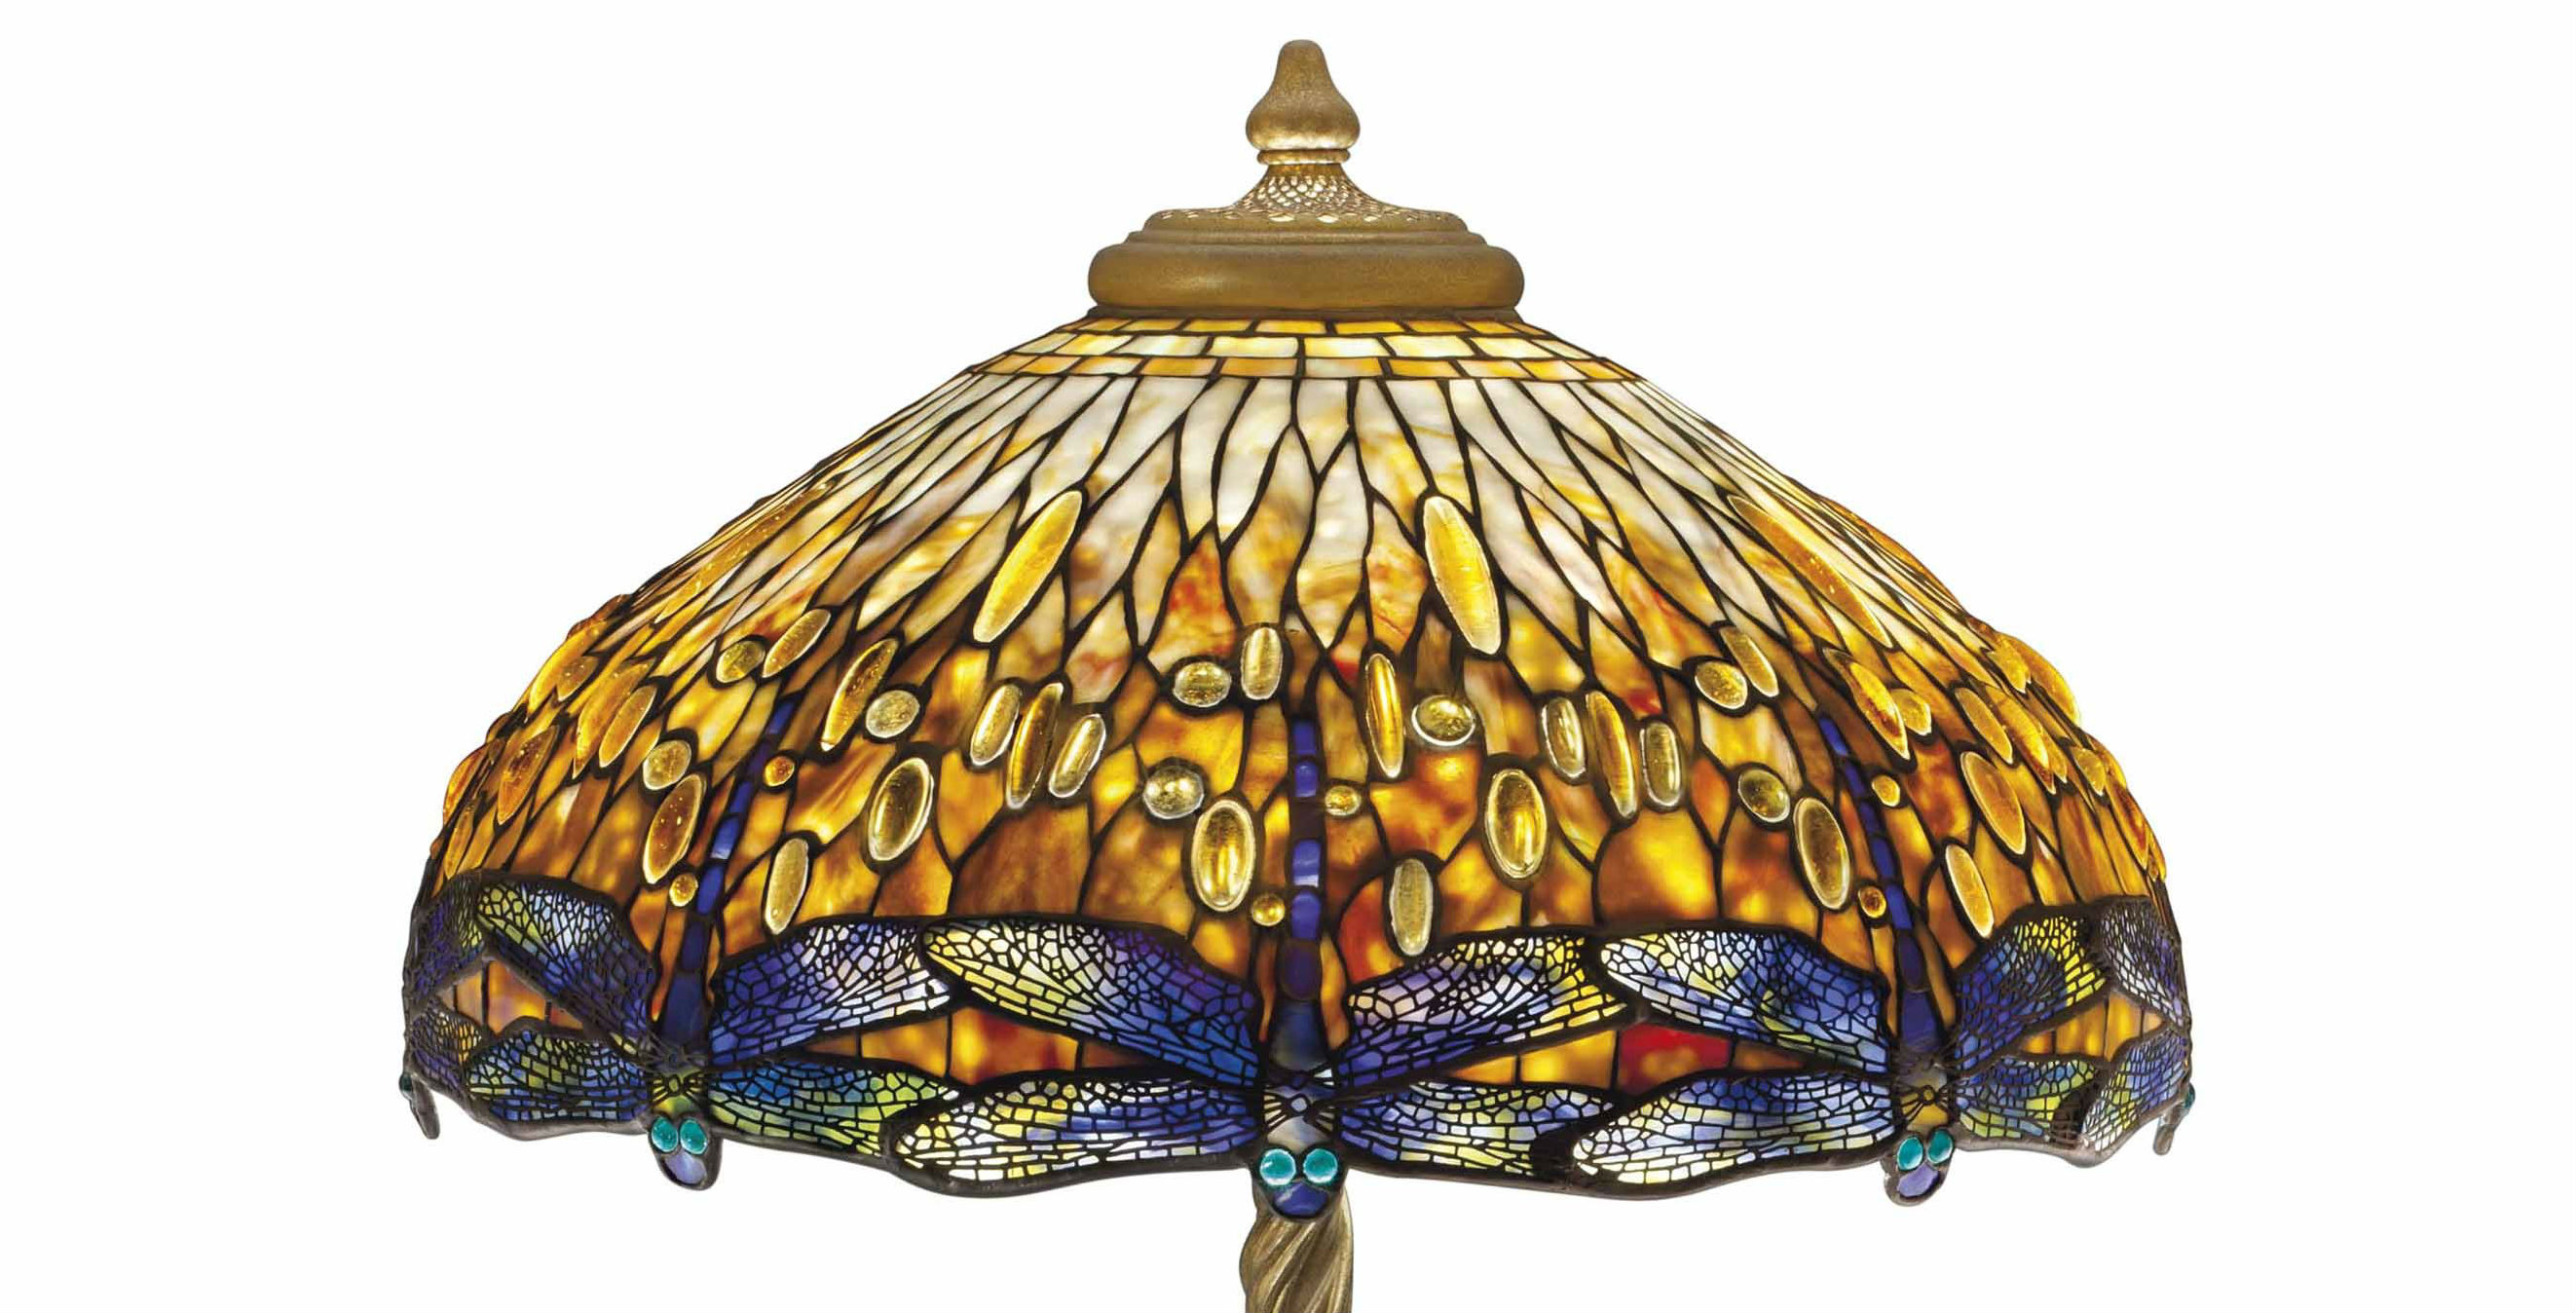 Perfectly suited to the shades shape dragonflies were a popular motif that tiffany adapted to several lamp designs this example has the desirable dropped